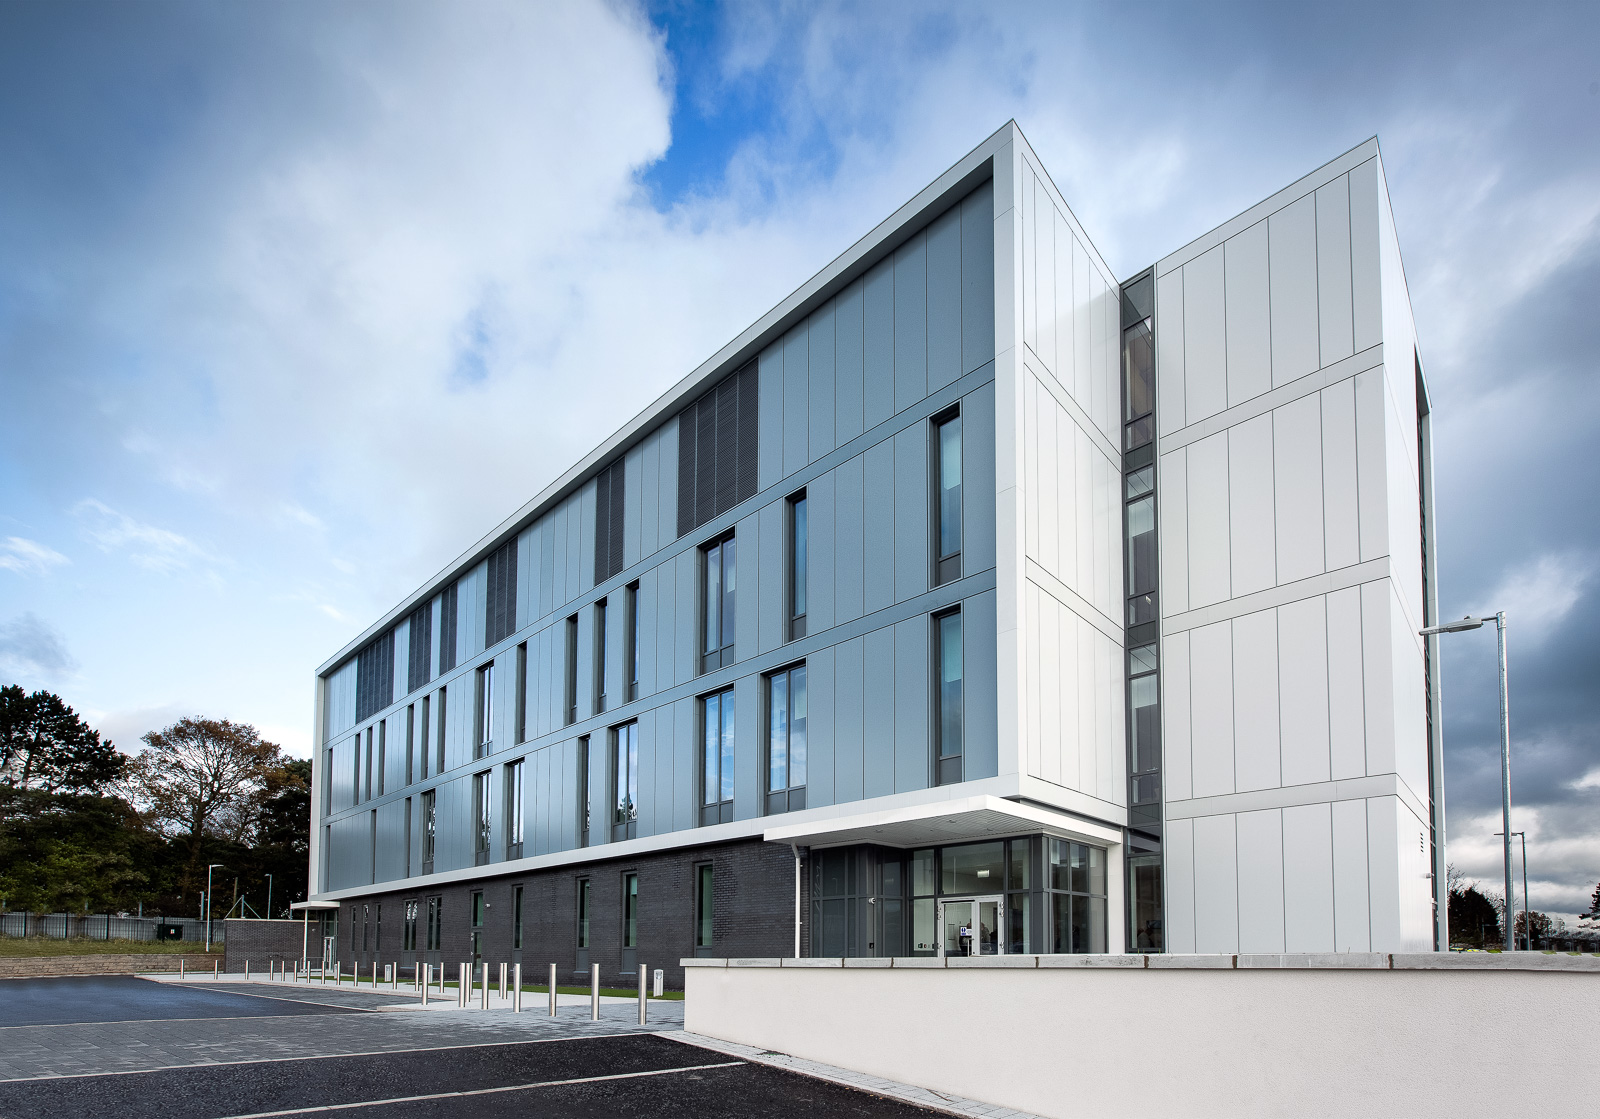 One of our recent construction projects - the new Forensic Science NI building